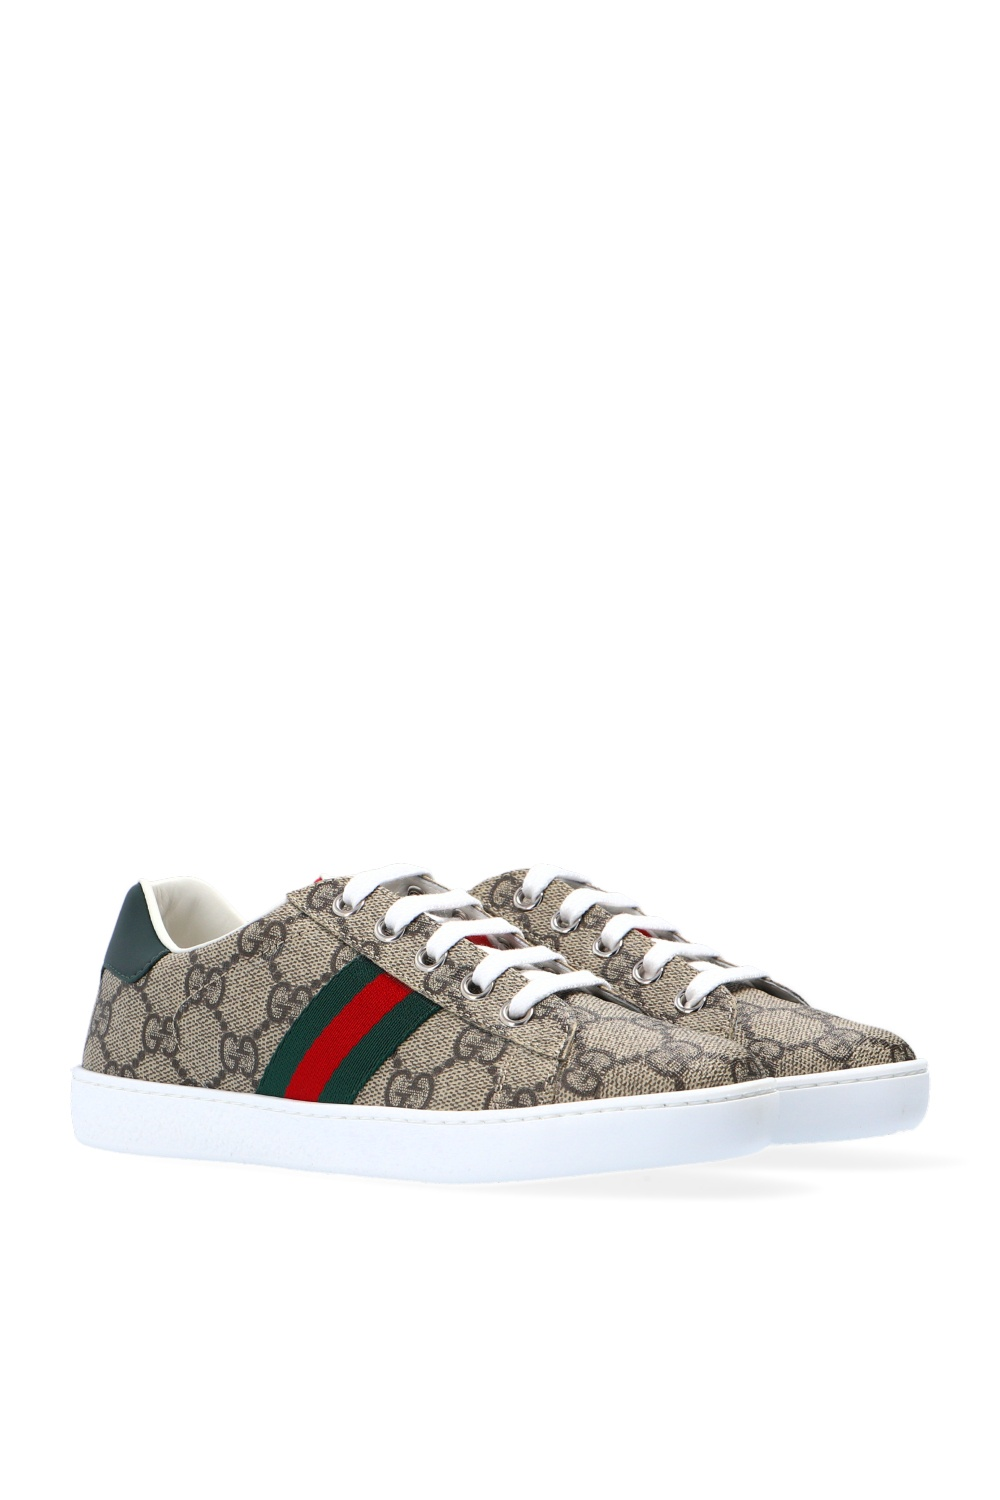 Gucci Kids Patterned sneakers